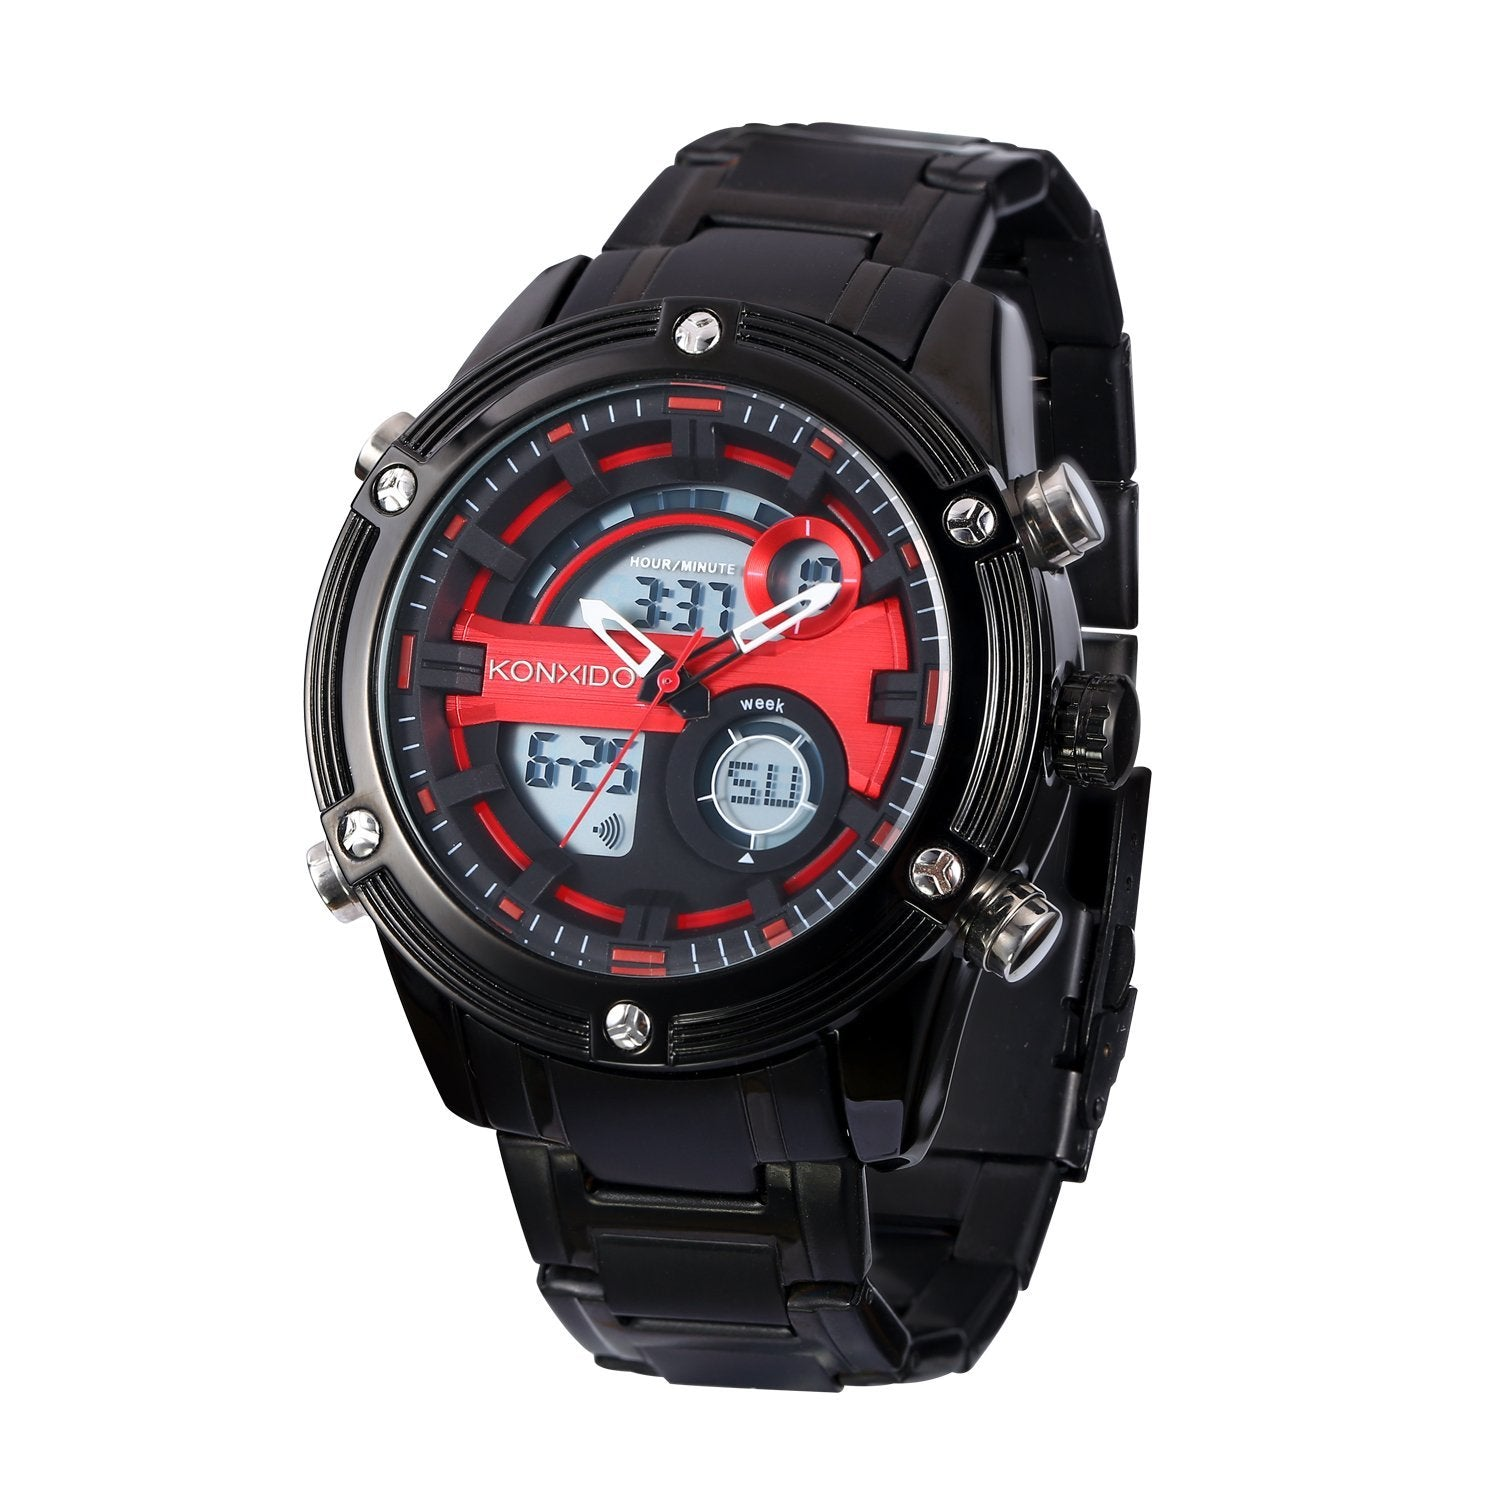 black s sports men chronograph watch analog modern display quartz braun watches mens sport